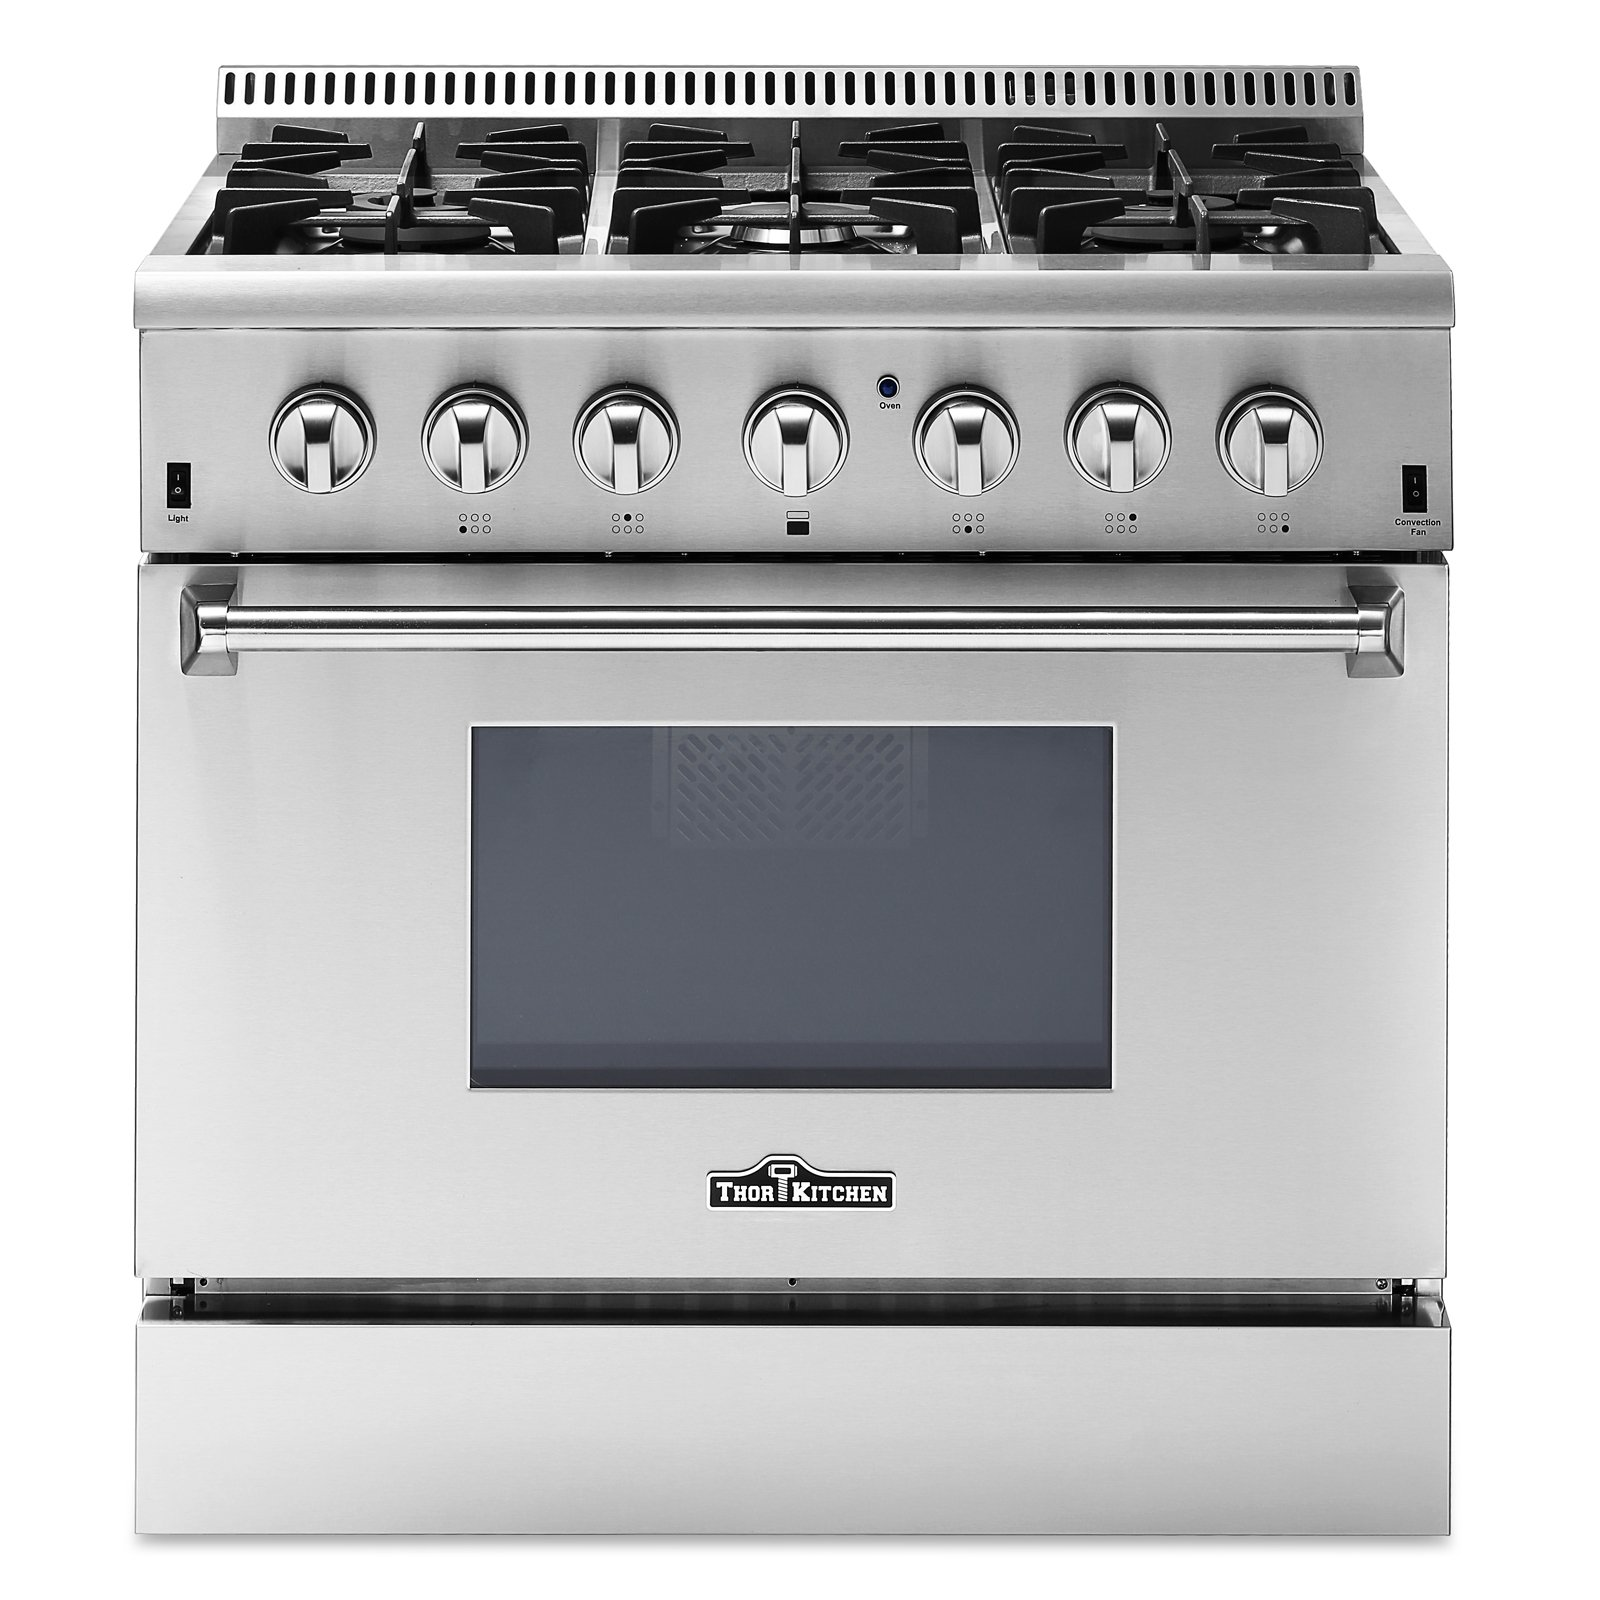 Thor Kitchen 36'' Dual Fuel Range, Freestanding, 5.2 cu. ft. Oven, Stainless Steel (HRD3606U) (grey)